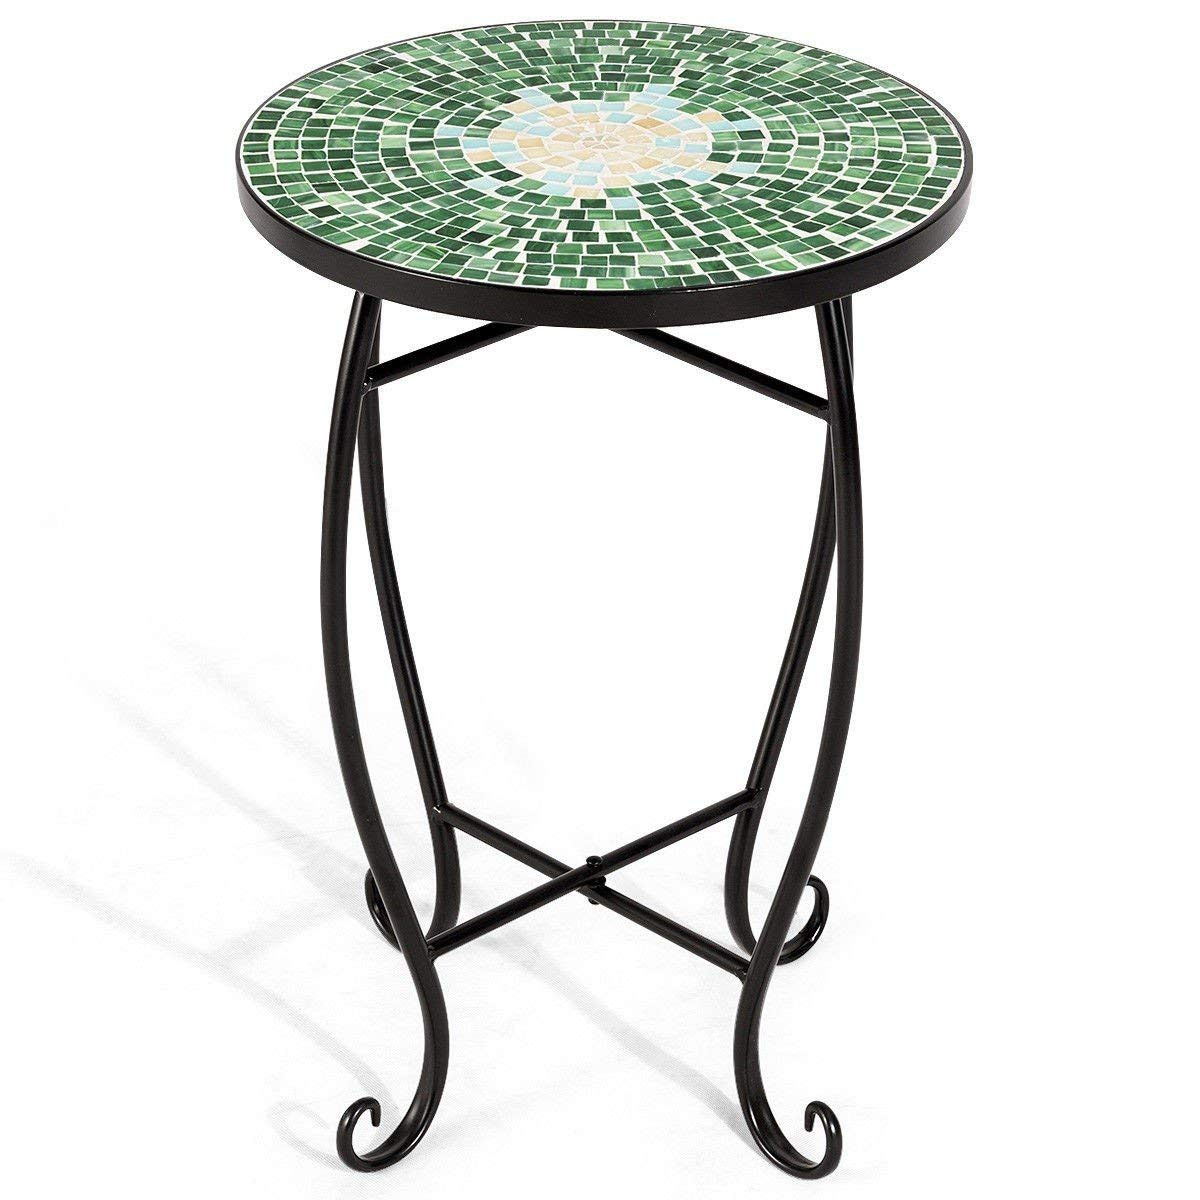 table top plant stand find accent get quotations custpromo mosaic metal round side with cobalt glass indoor outdoor alexa home automation drummer stool adjustable height antique